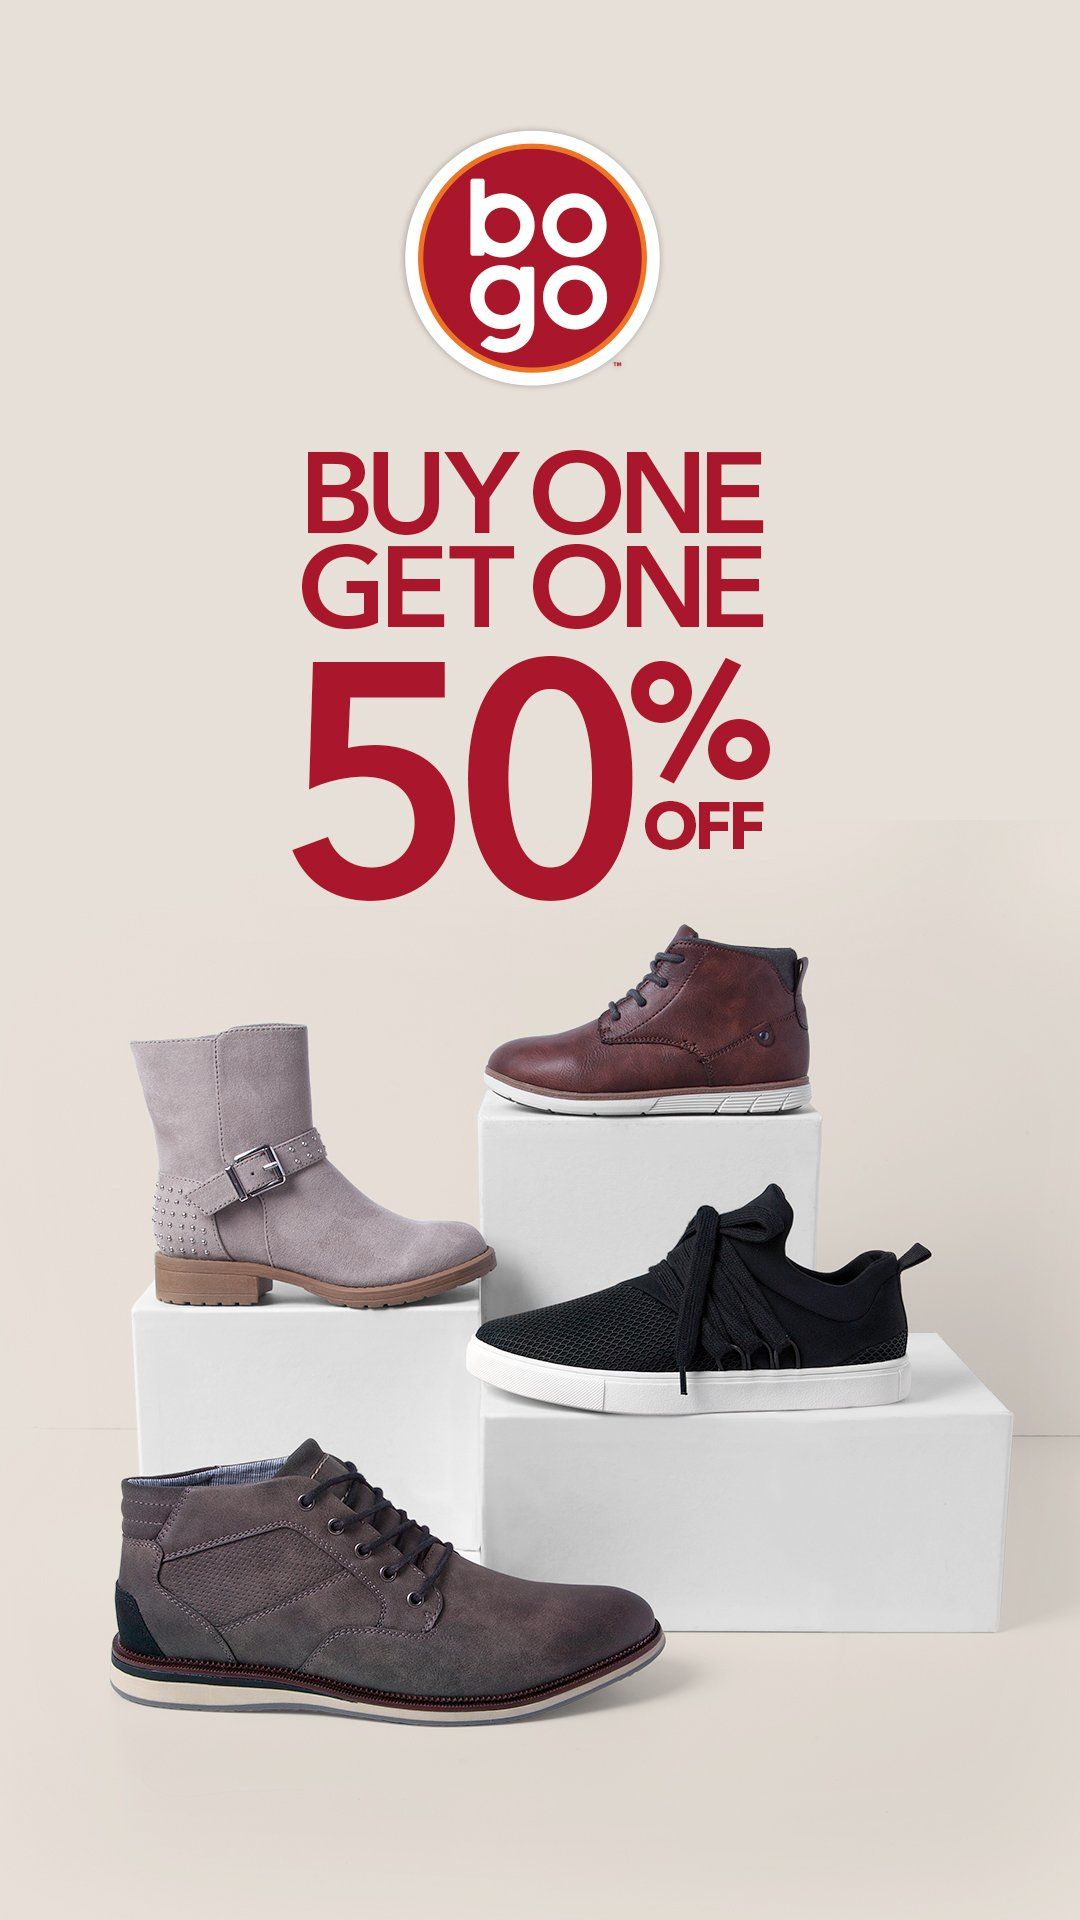 79fbcdf0cdd Boots for the whole family. BOGO 50% off. Affordable fashion ...